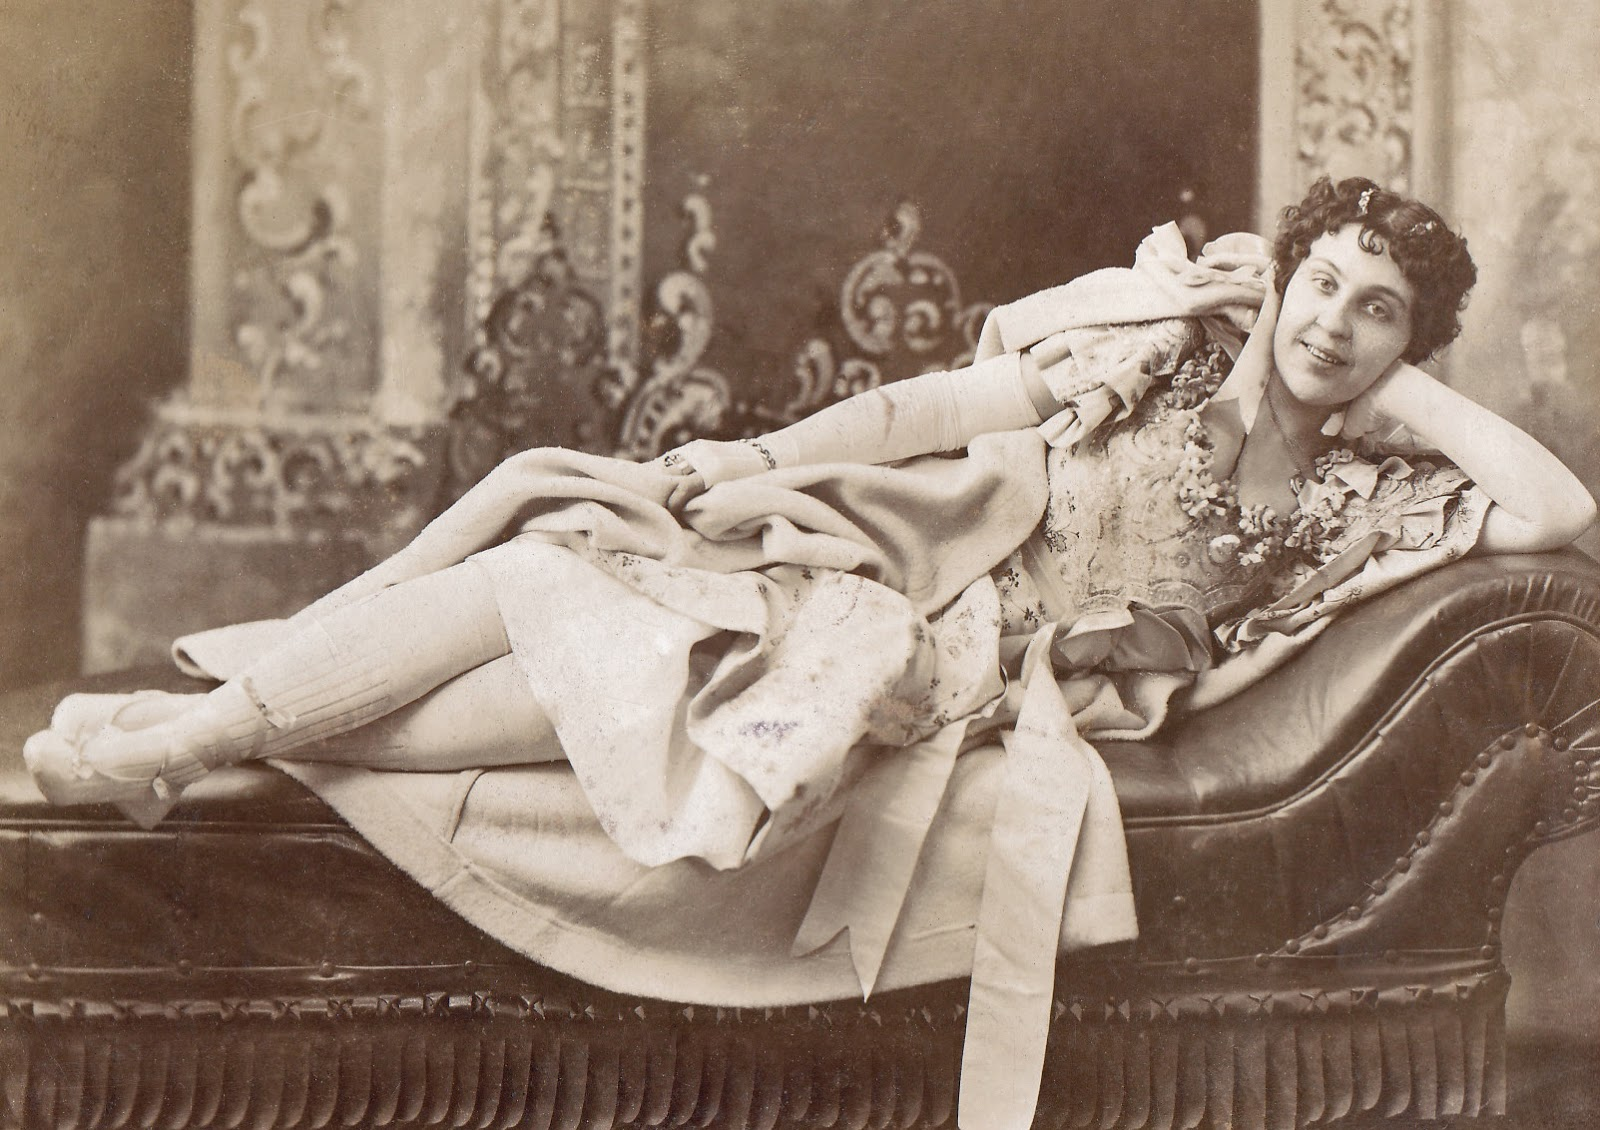 Woman on a fainting couch, Chicago